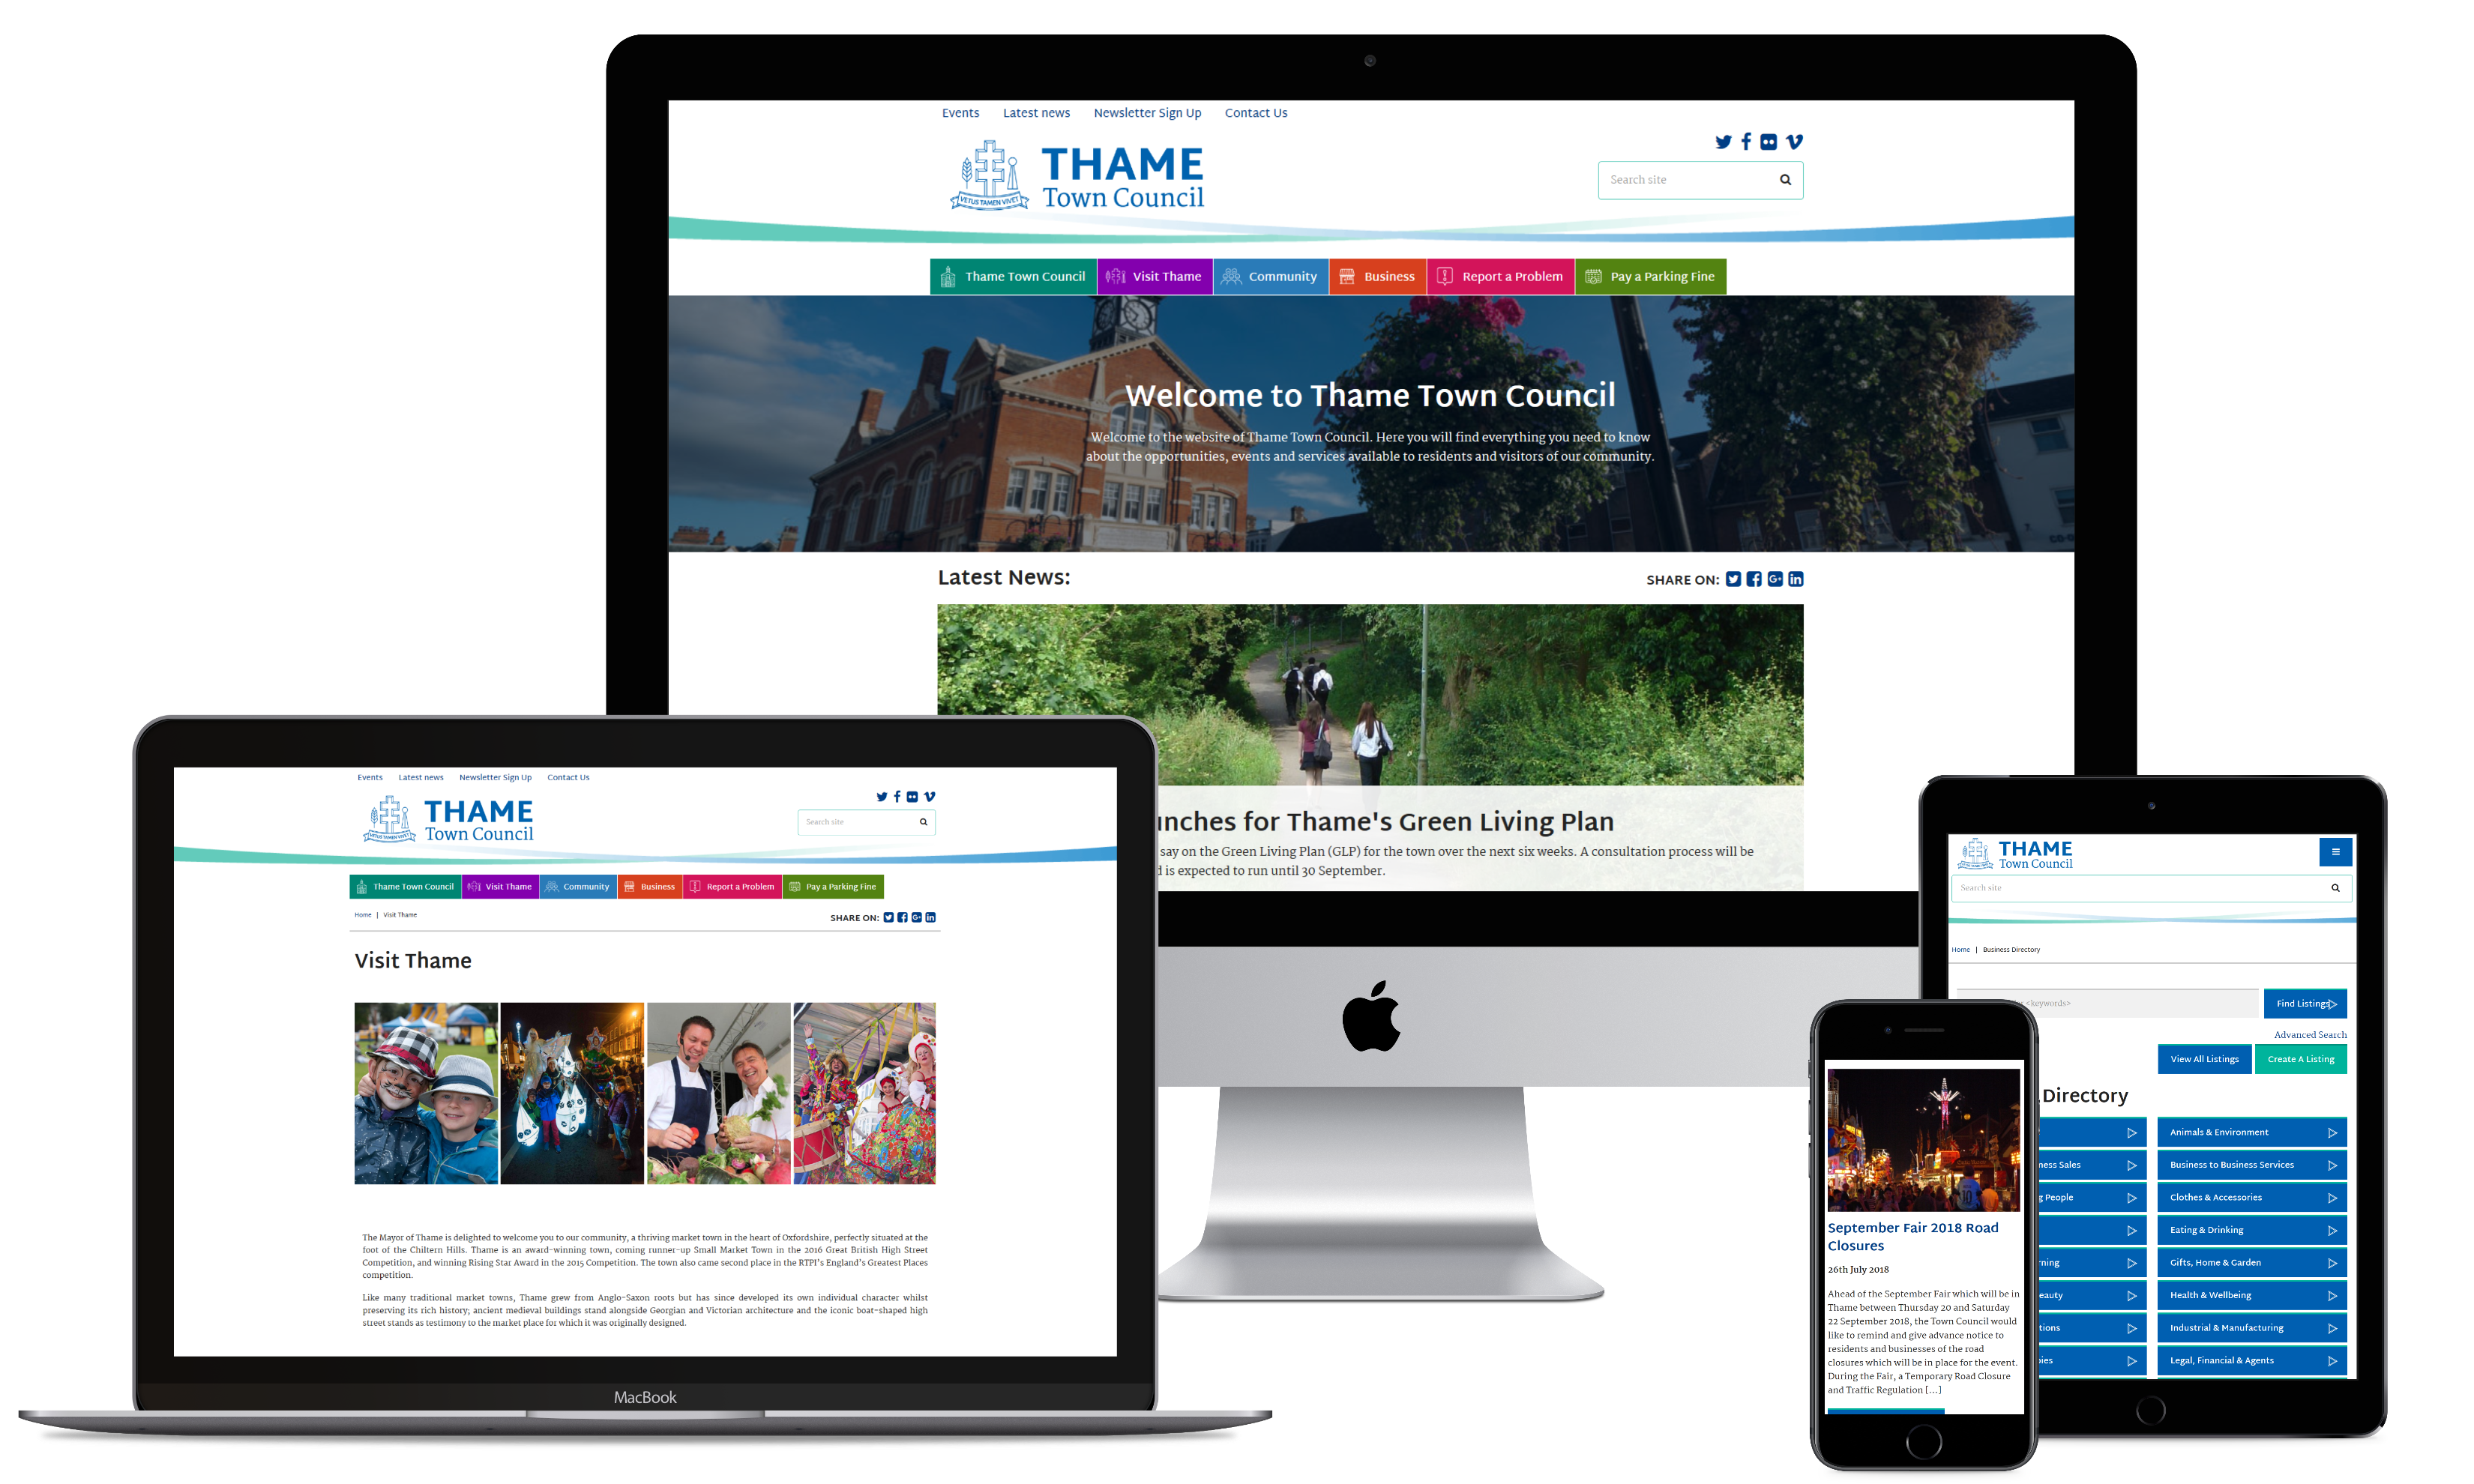 Thame Town Council website displayed on various digital devices